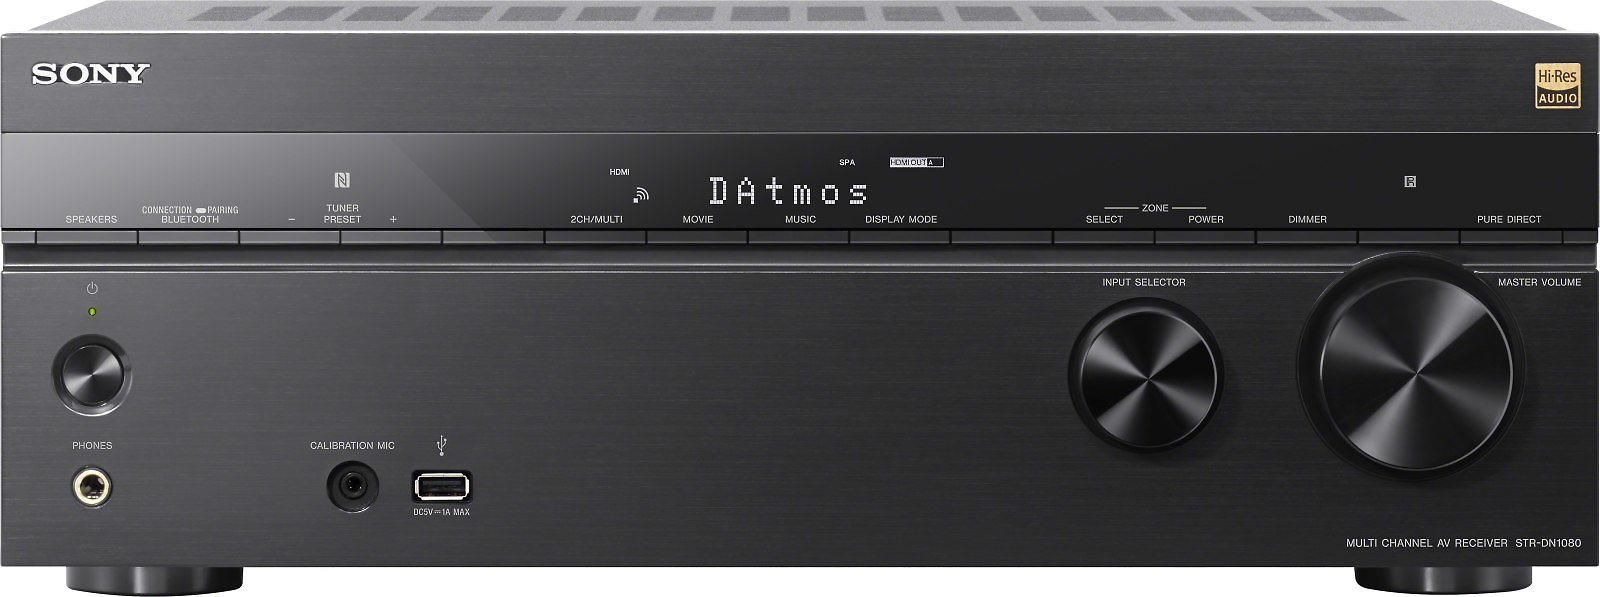 Sony STR-DN1080 7.2-channel Home Theater Receiver with Wi-Fi®, Bluetooth®, Dolby Atmos®, and DTS:X At Crutchfield